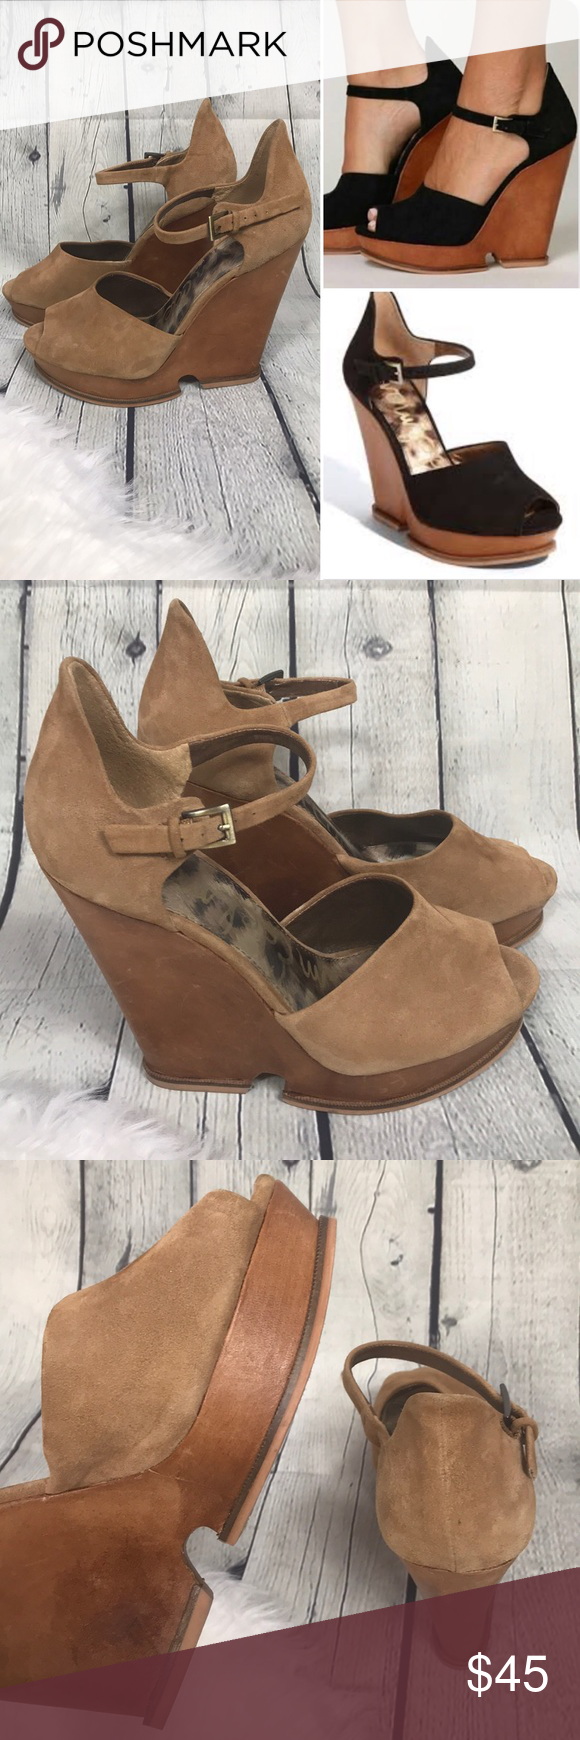 6d551764b ✨ Sam Edelman  Lavi wedge shoe✨ Sam Edelman wedge heel Color  brown